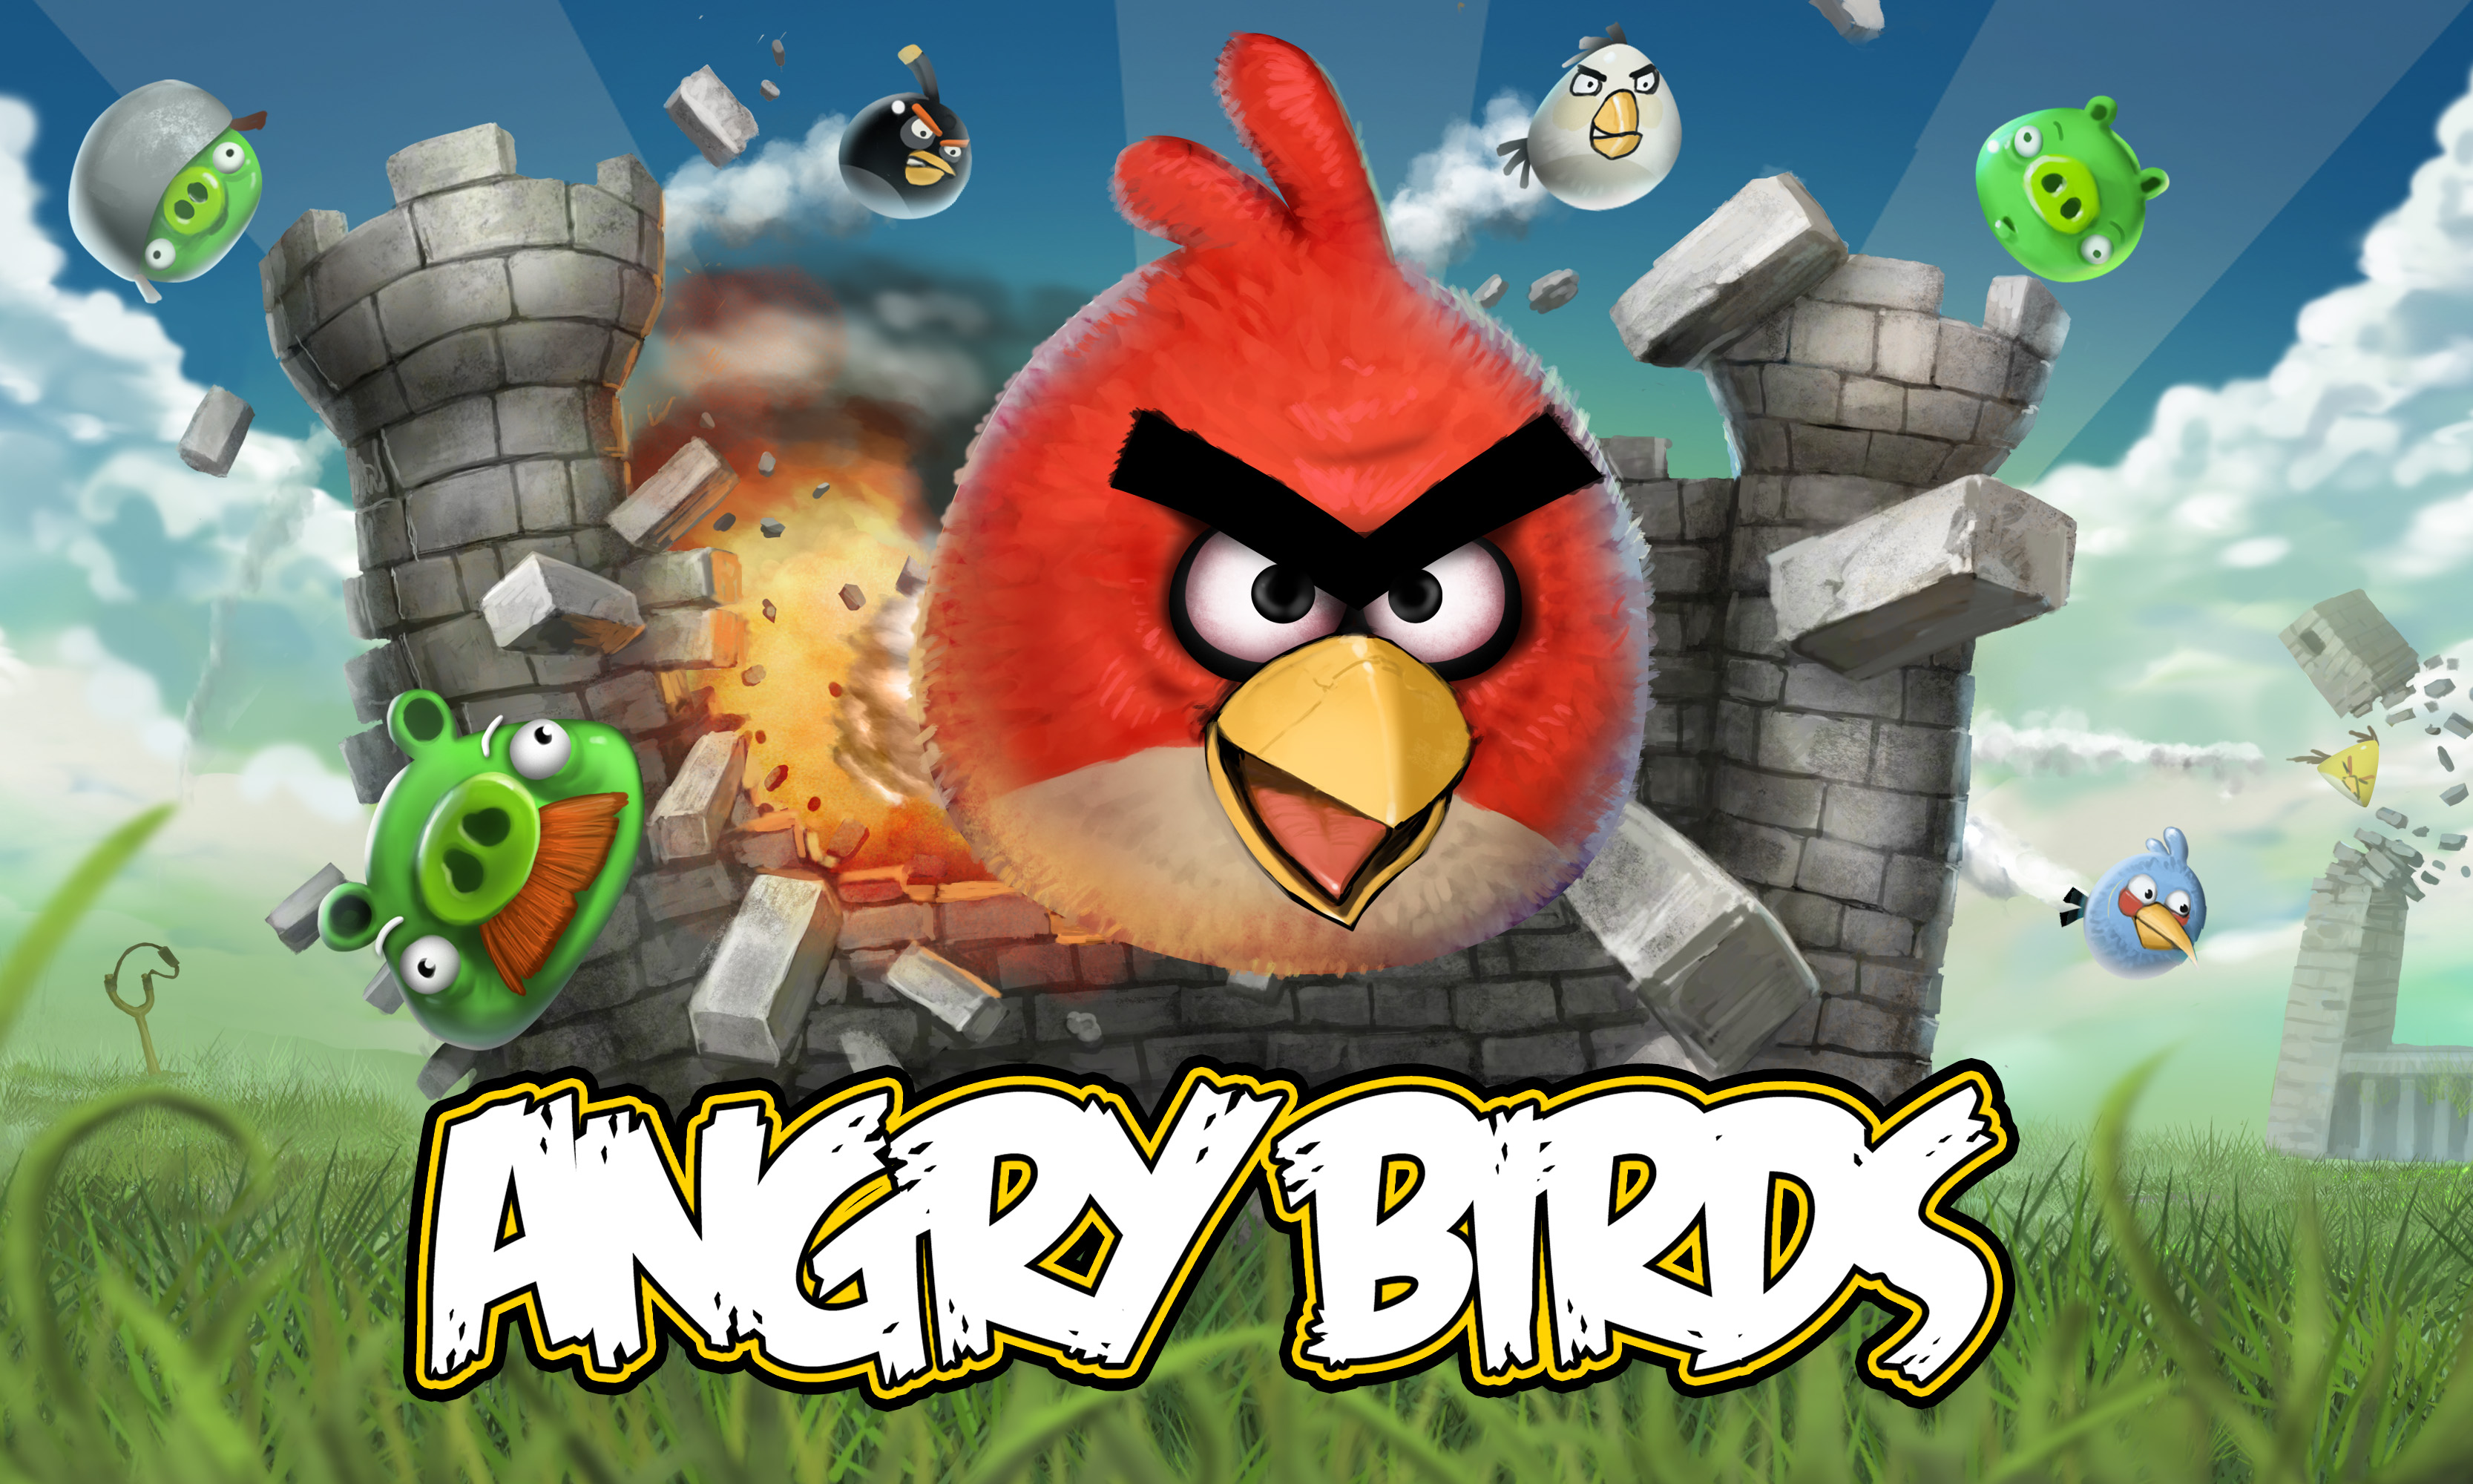 HD Angry Birds Wallpaper Hello Kitty Wallpapers 3333x2000